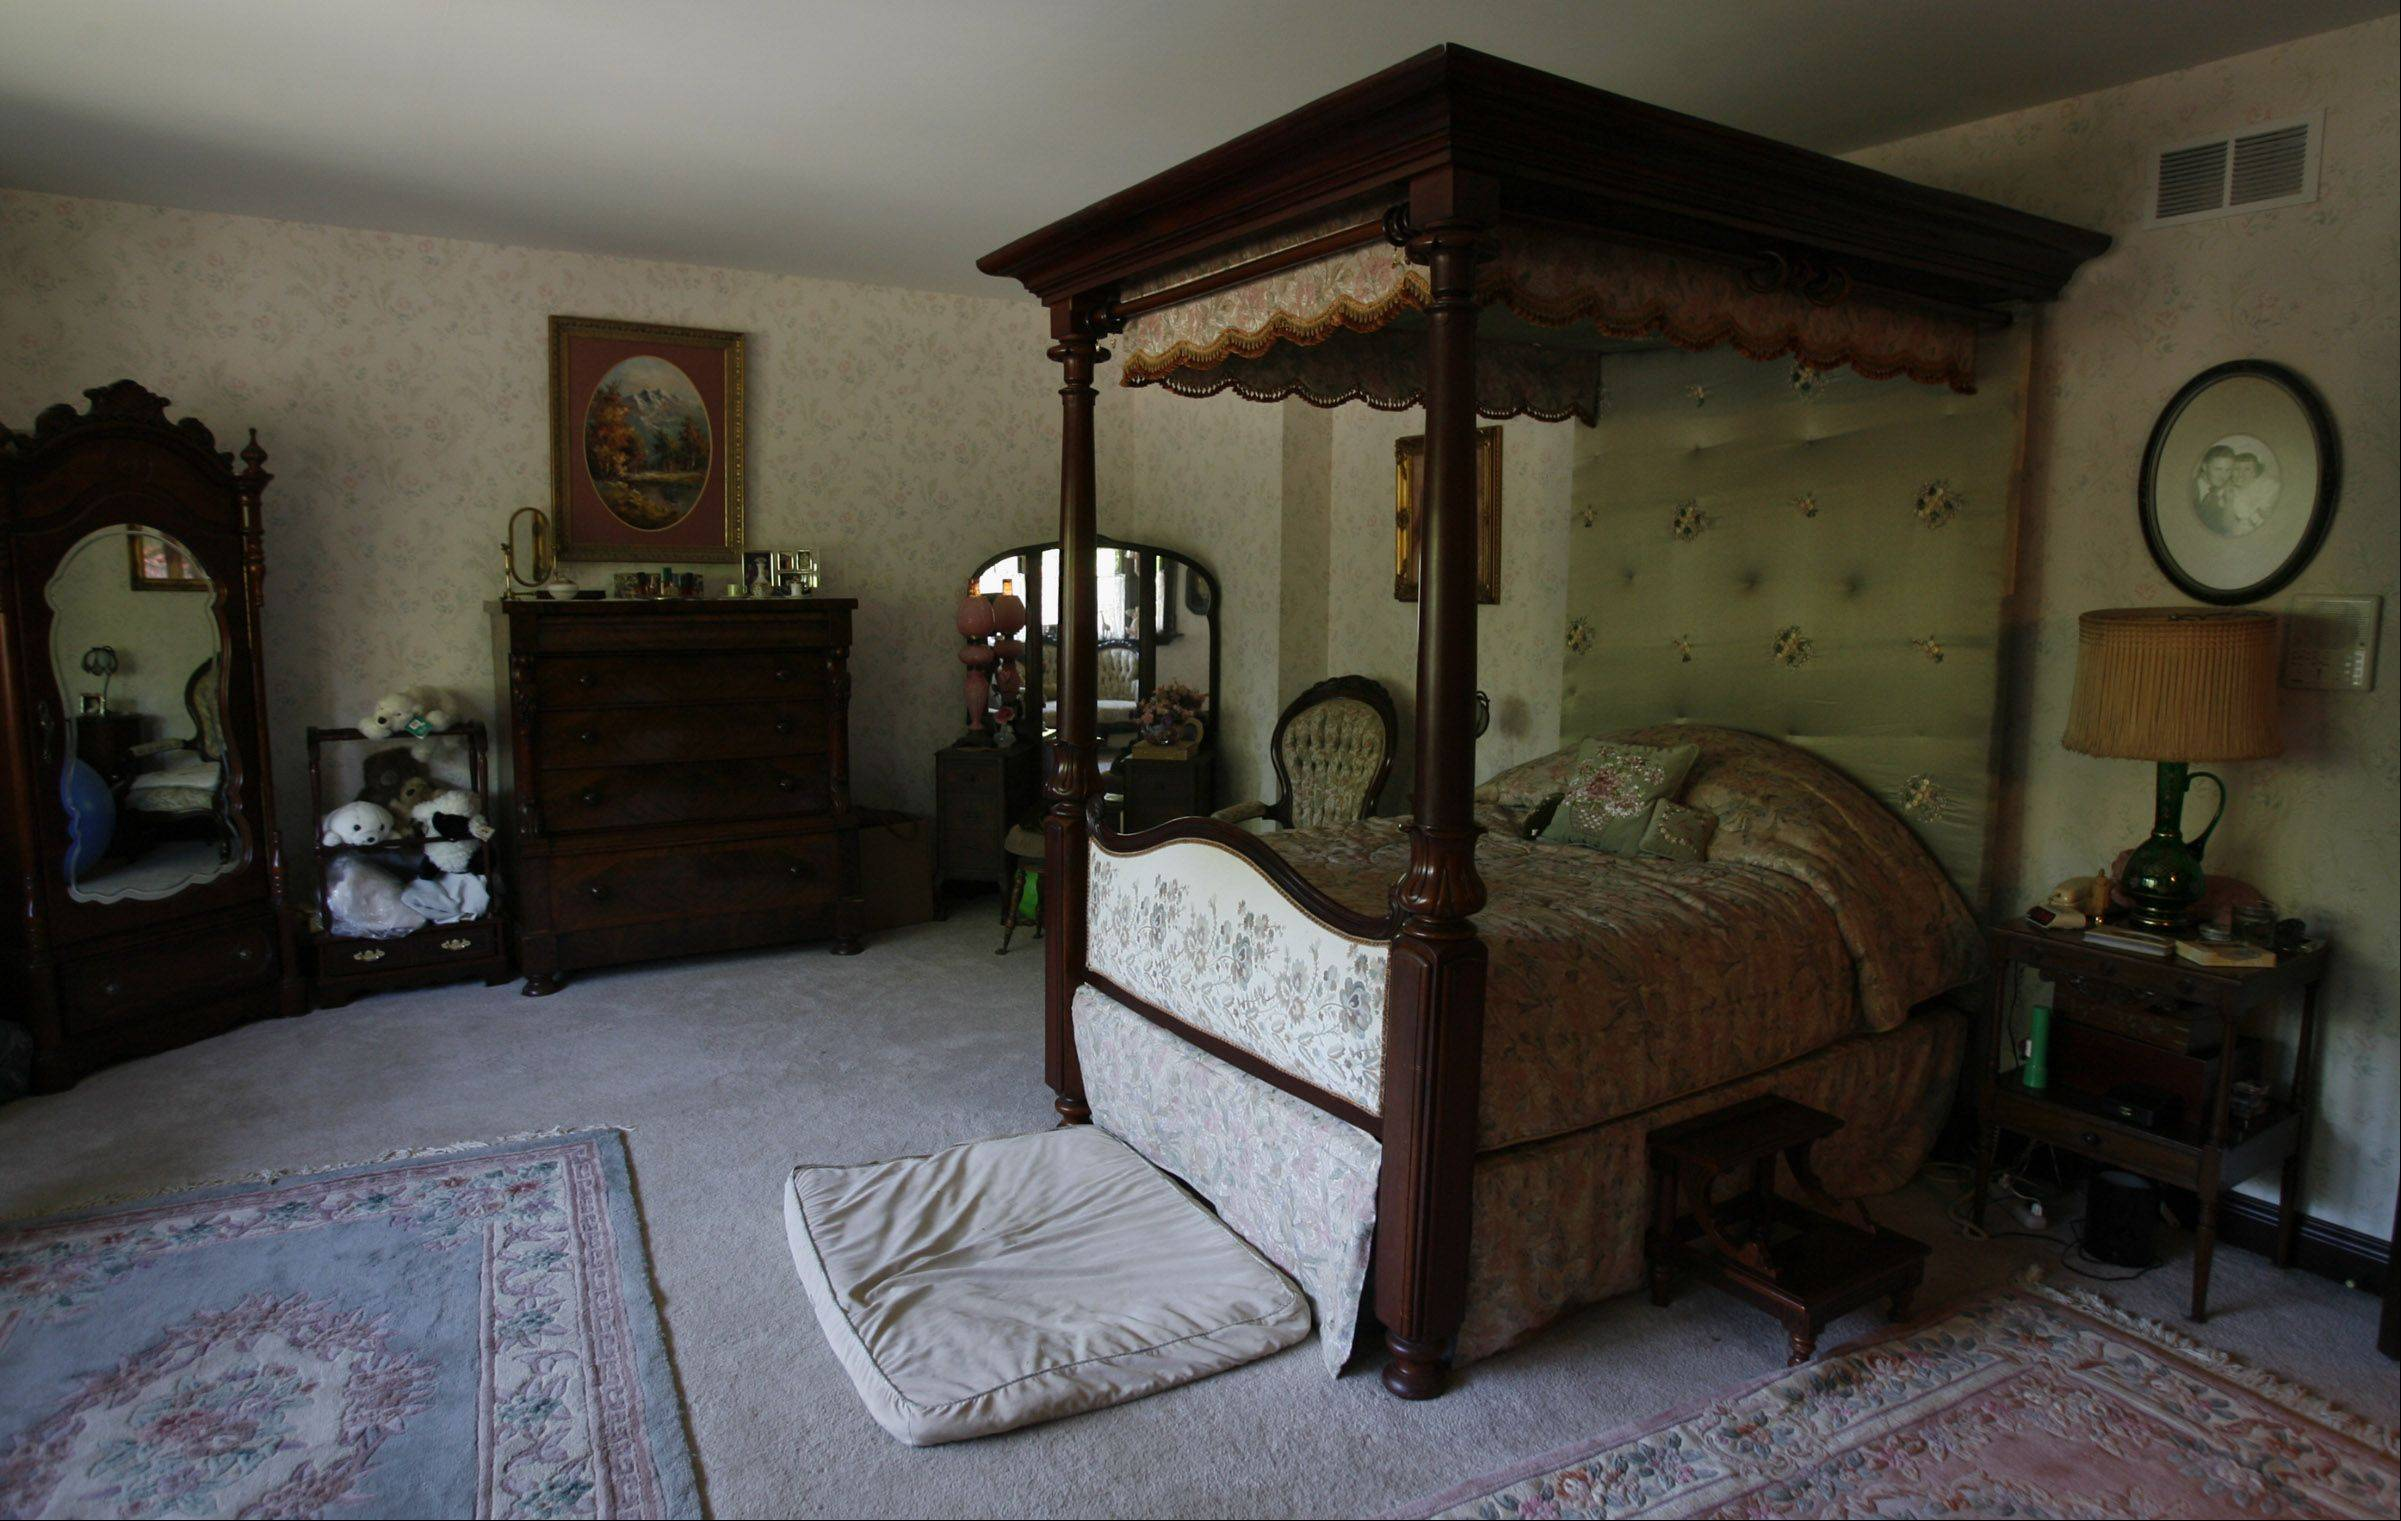 The bed is, of course, an antique.